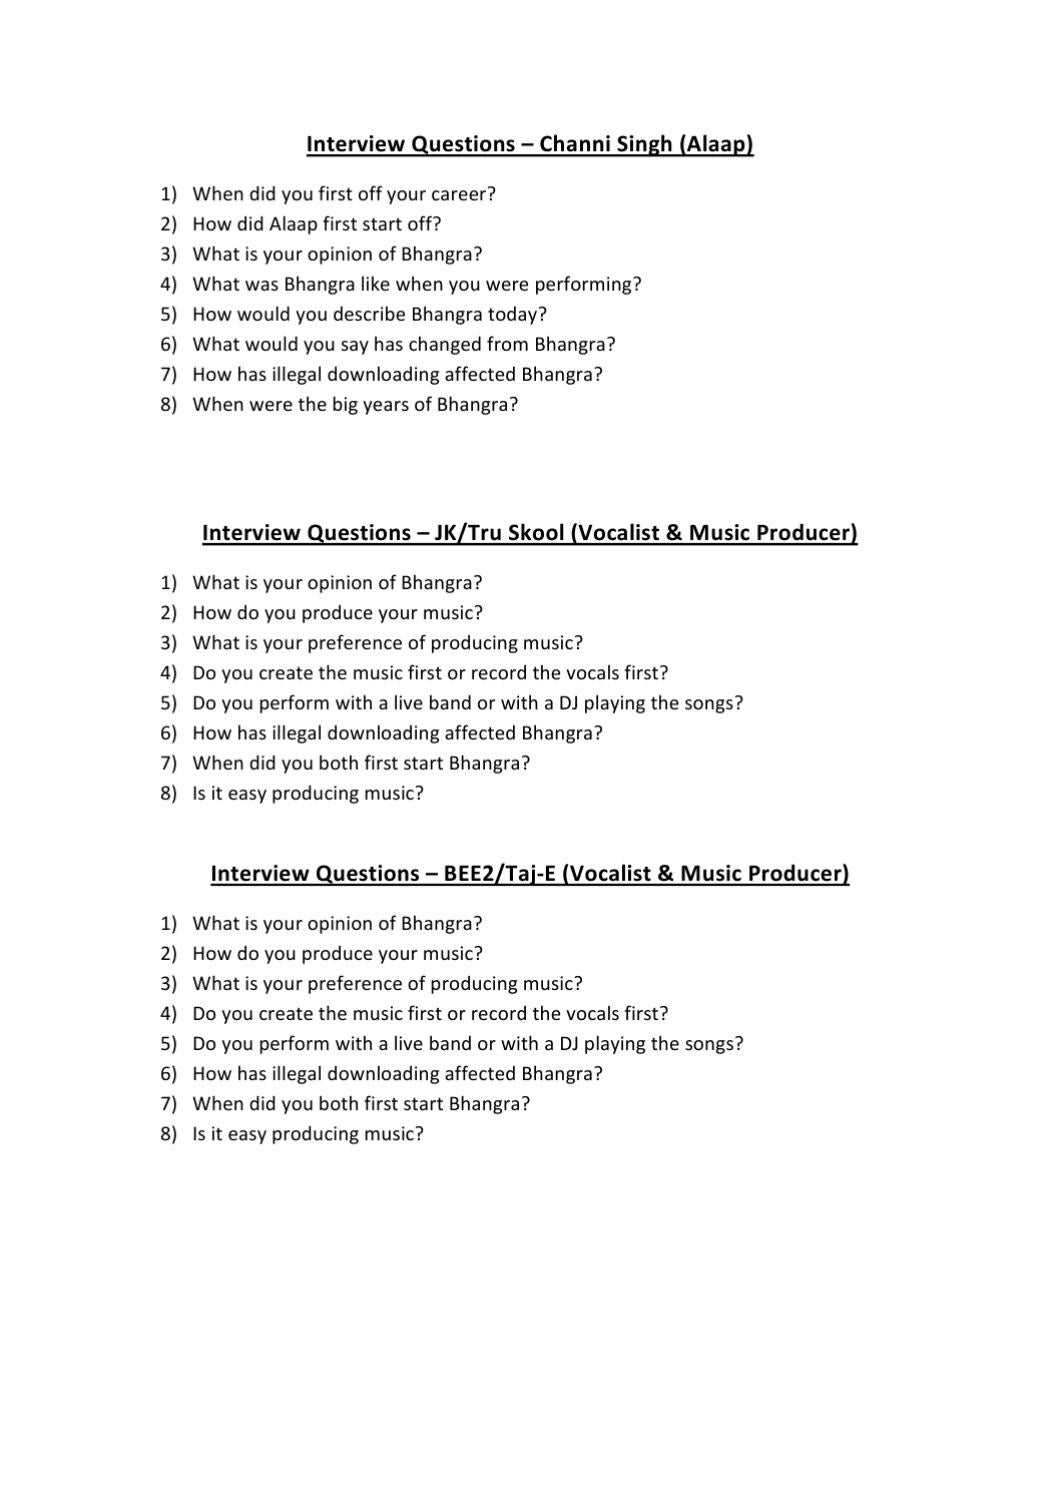 Interview Questions By Jagvir Singh Tiwana   Issuu